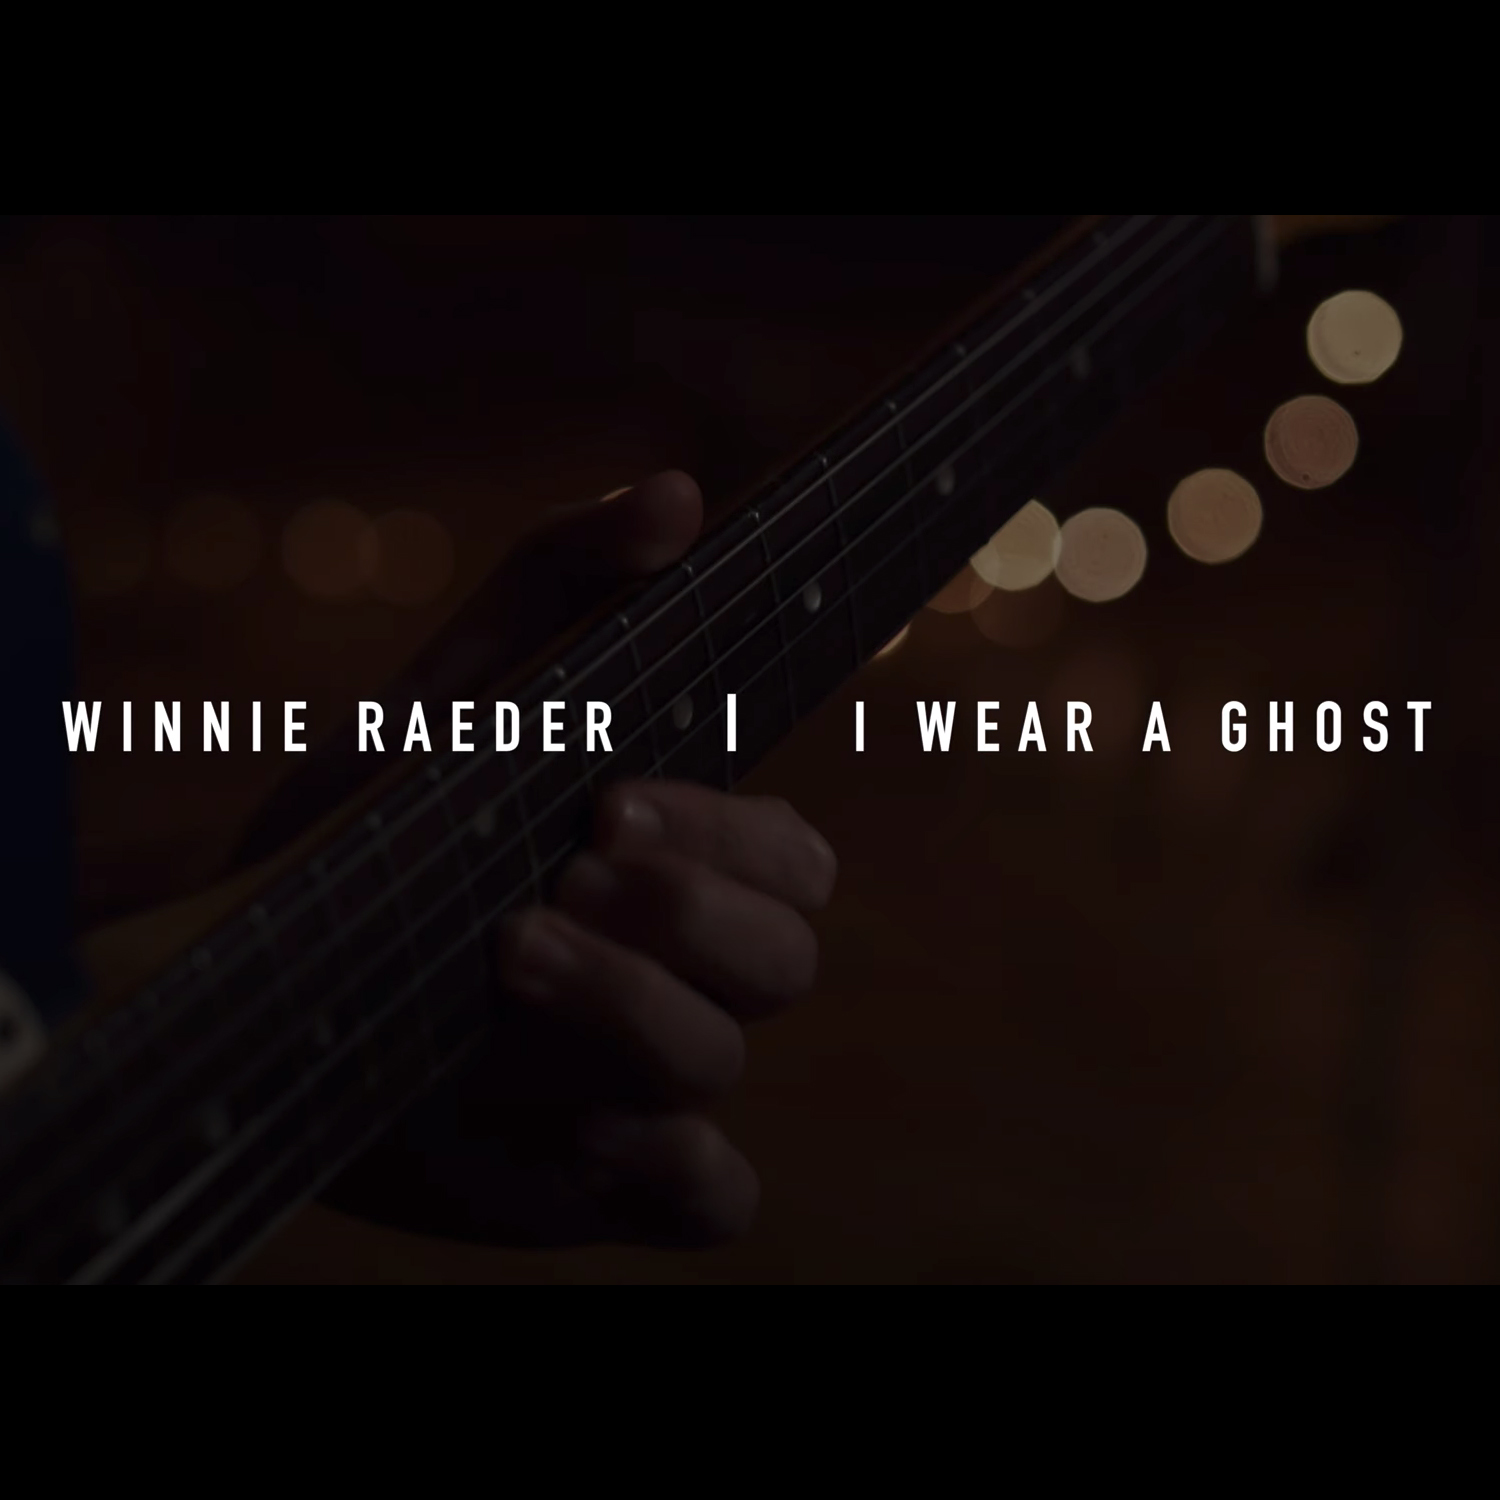 Winnie Raeder - I Wear a Ghost (Live at State of the Ark)